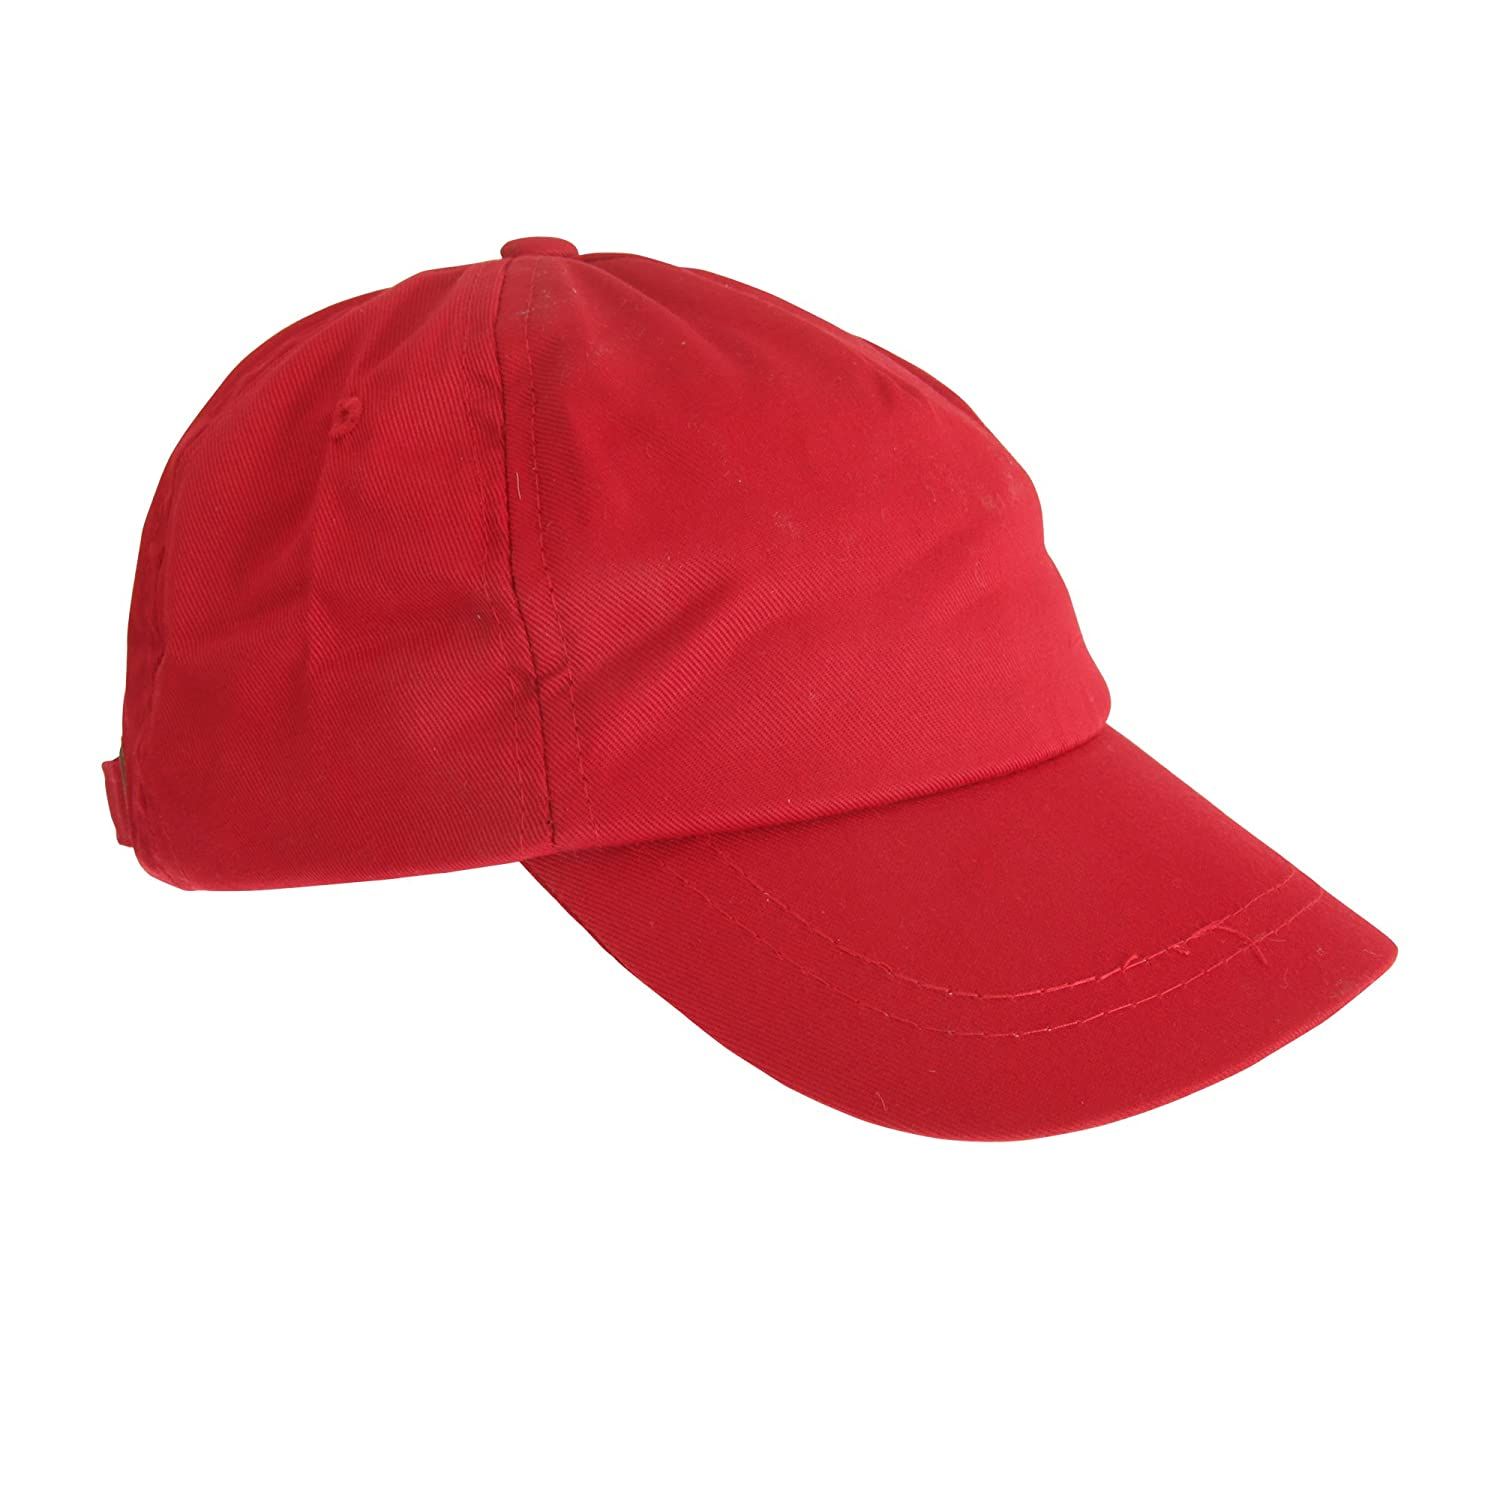 Universal Textiles Childrens/Kids Plain Baseball Cap